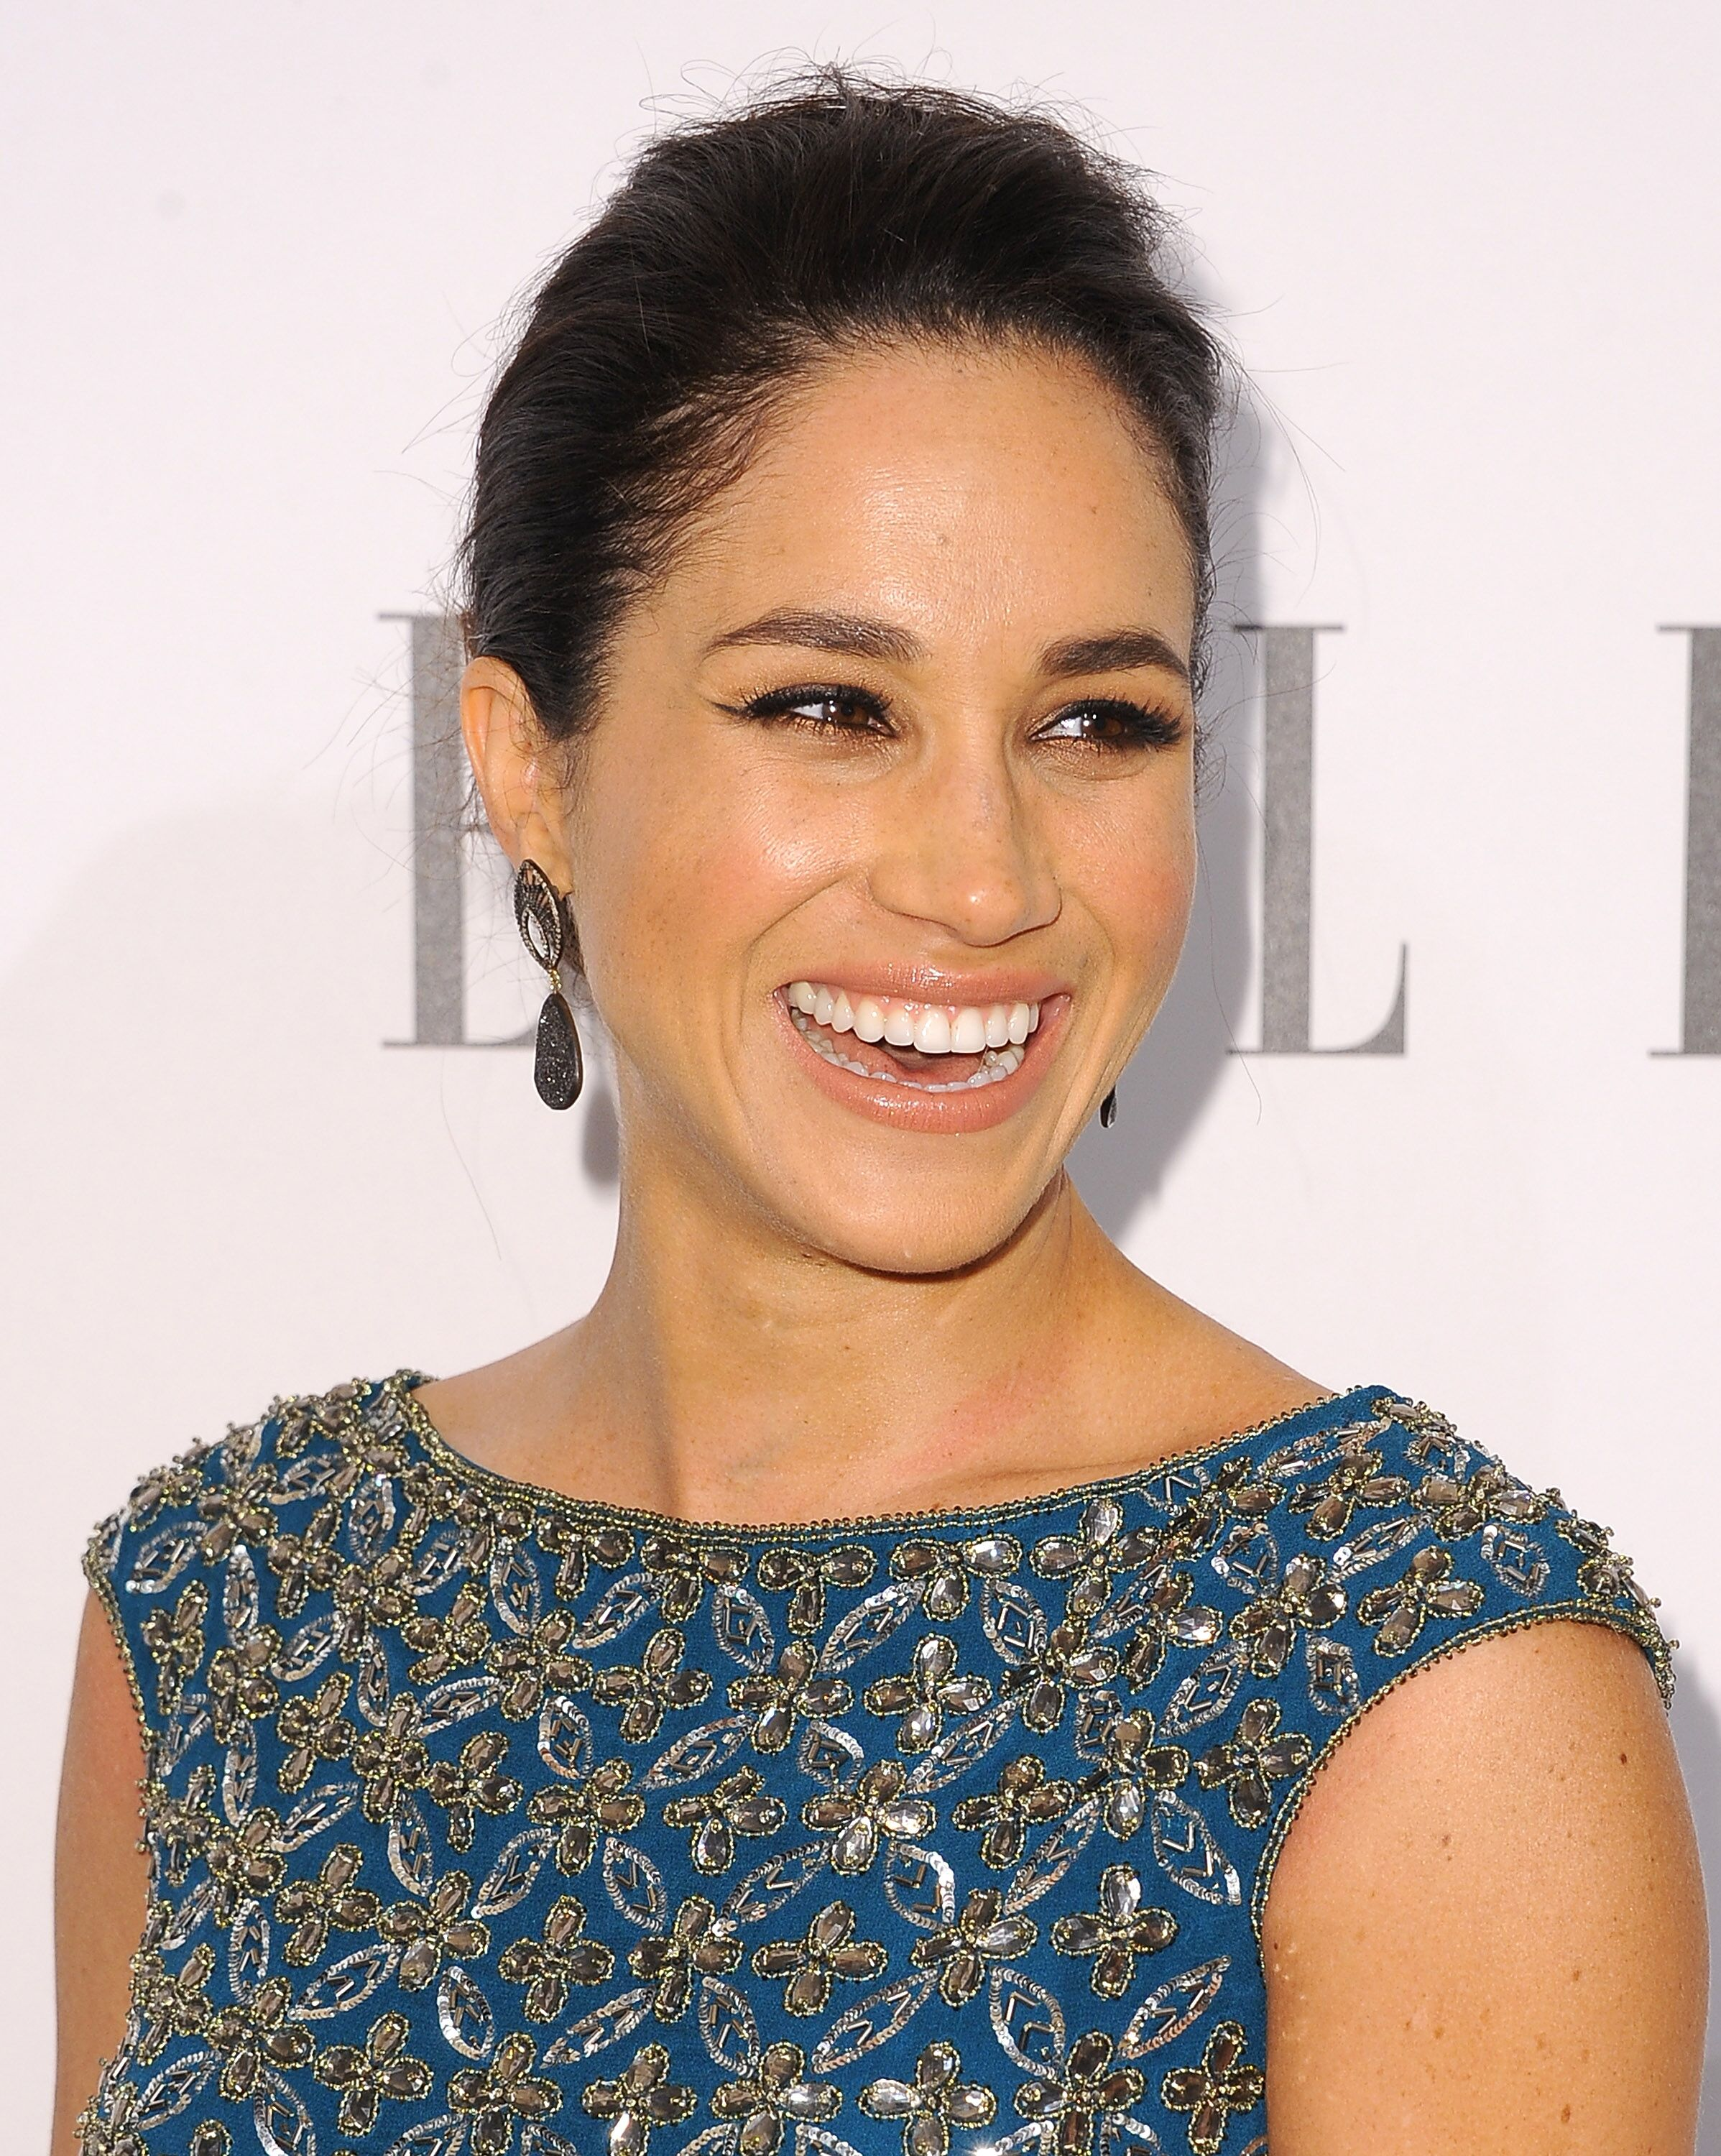 Actress Meghan Markle attends ELLE's Annual Women in Television Celebration at Sunset Tower on January 22, 2014 in West Hollywood, California | Photo: Getty Images